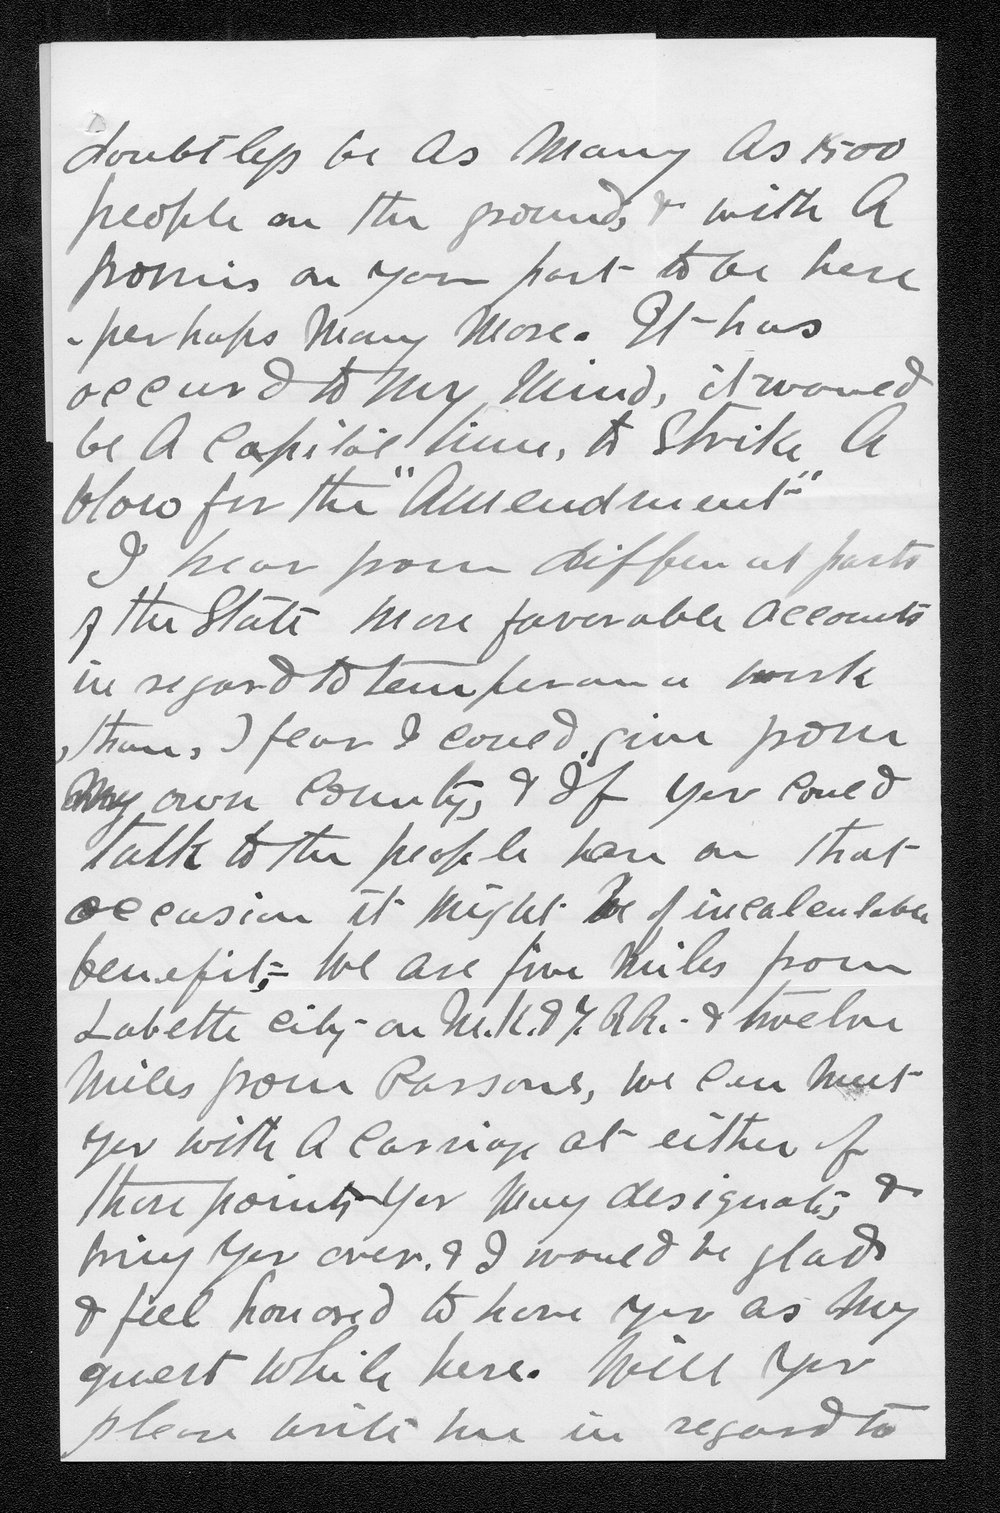 S. W. Griffin to Governor John St. John - 2